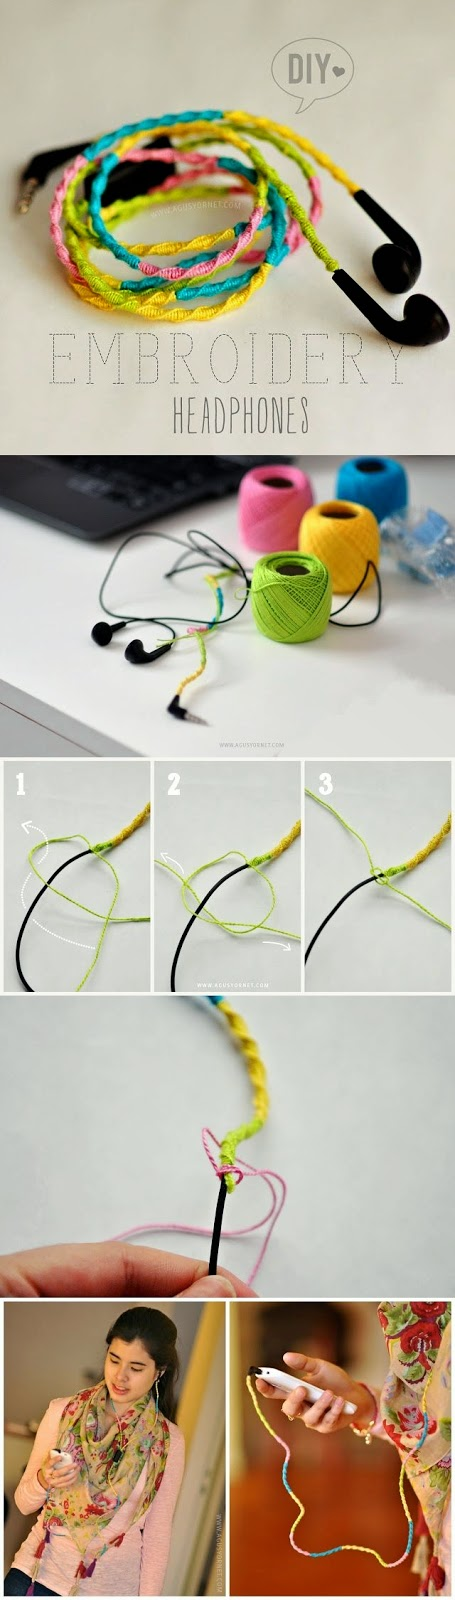 Embroidery Diy Tutorial Step By Step #6.